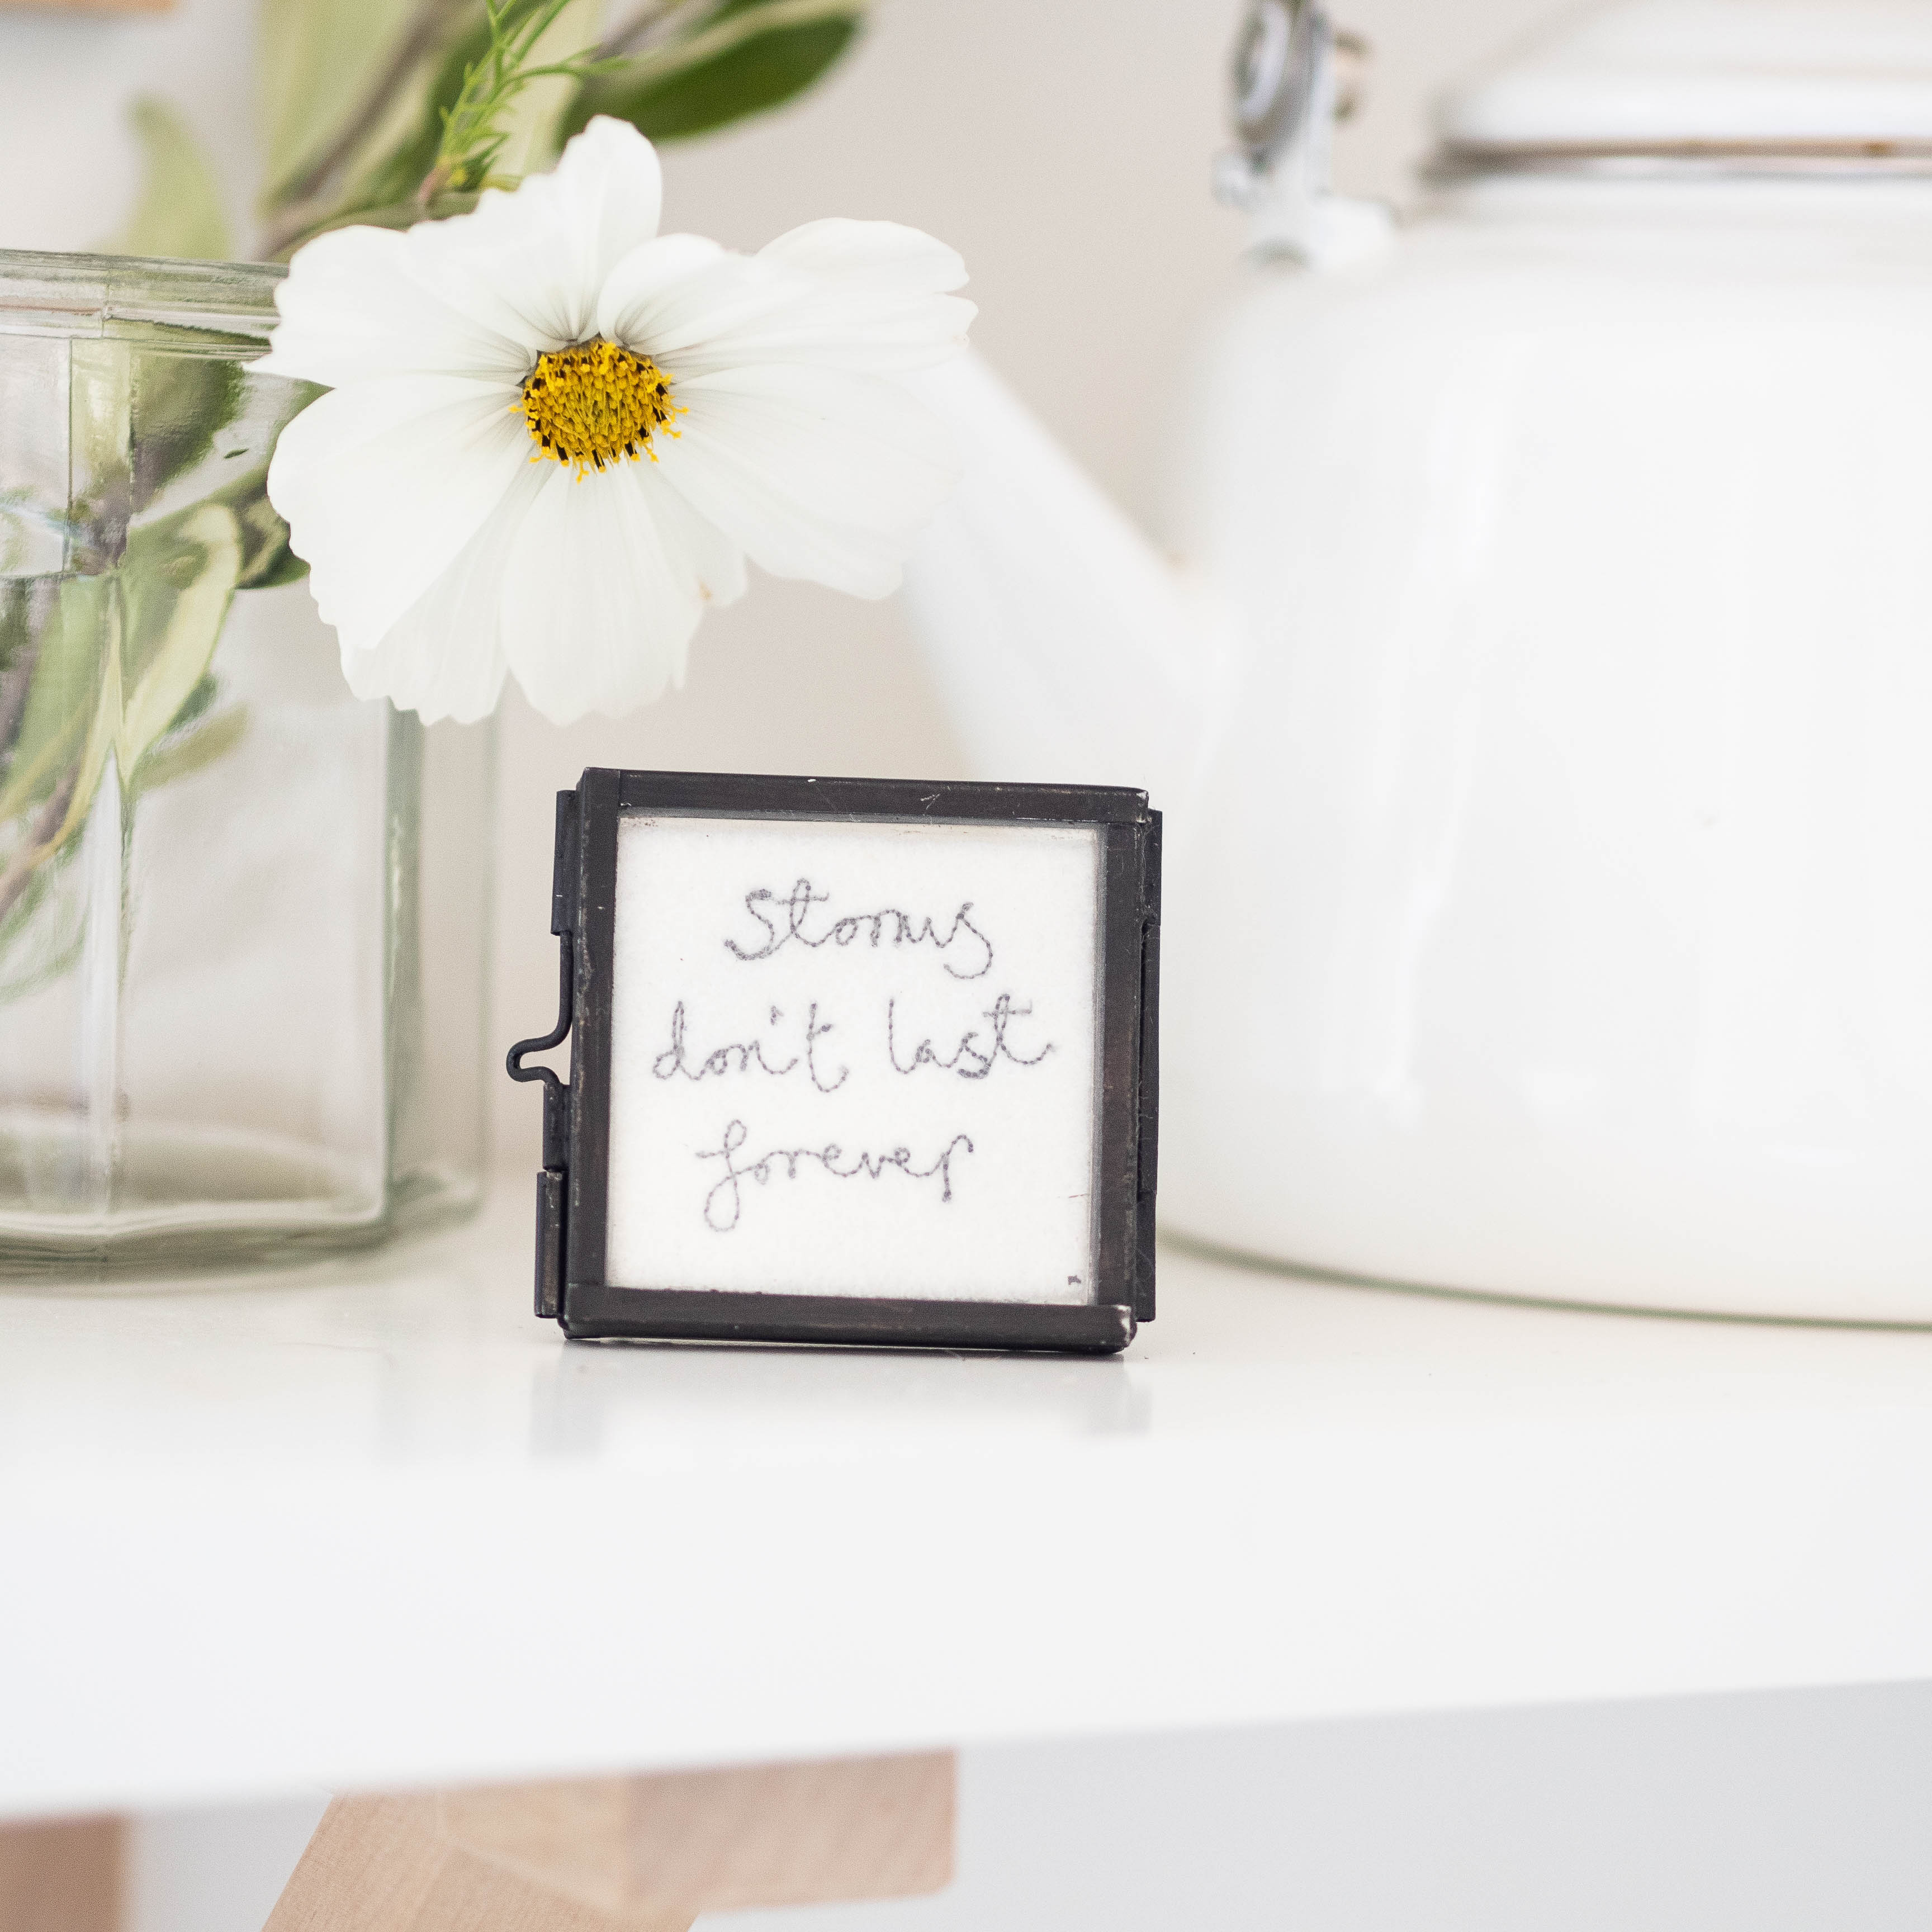 Mini framed embroidery, black